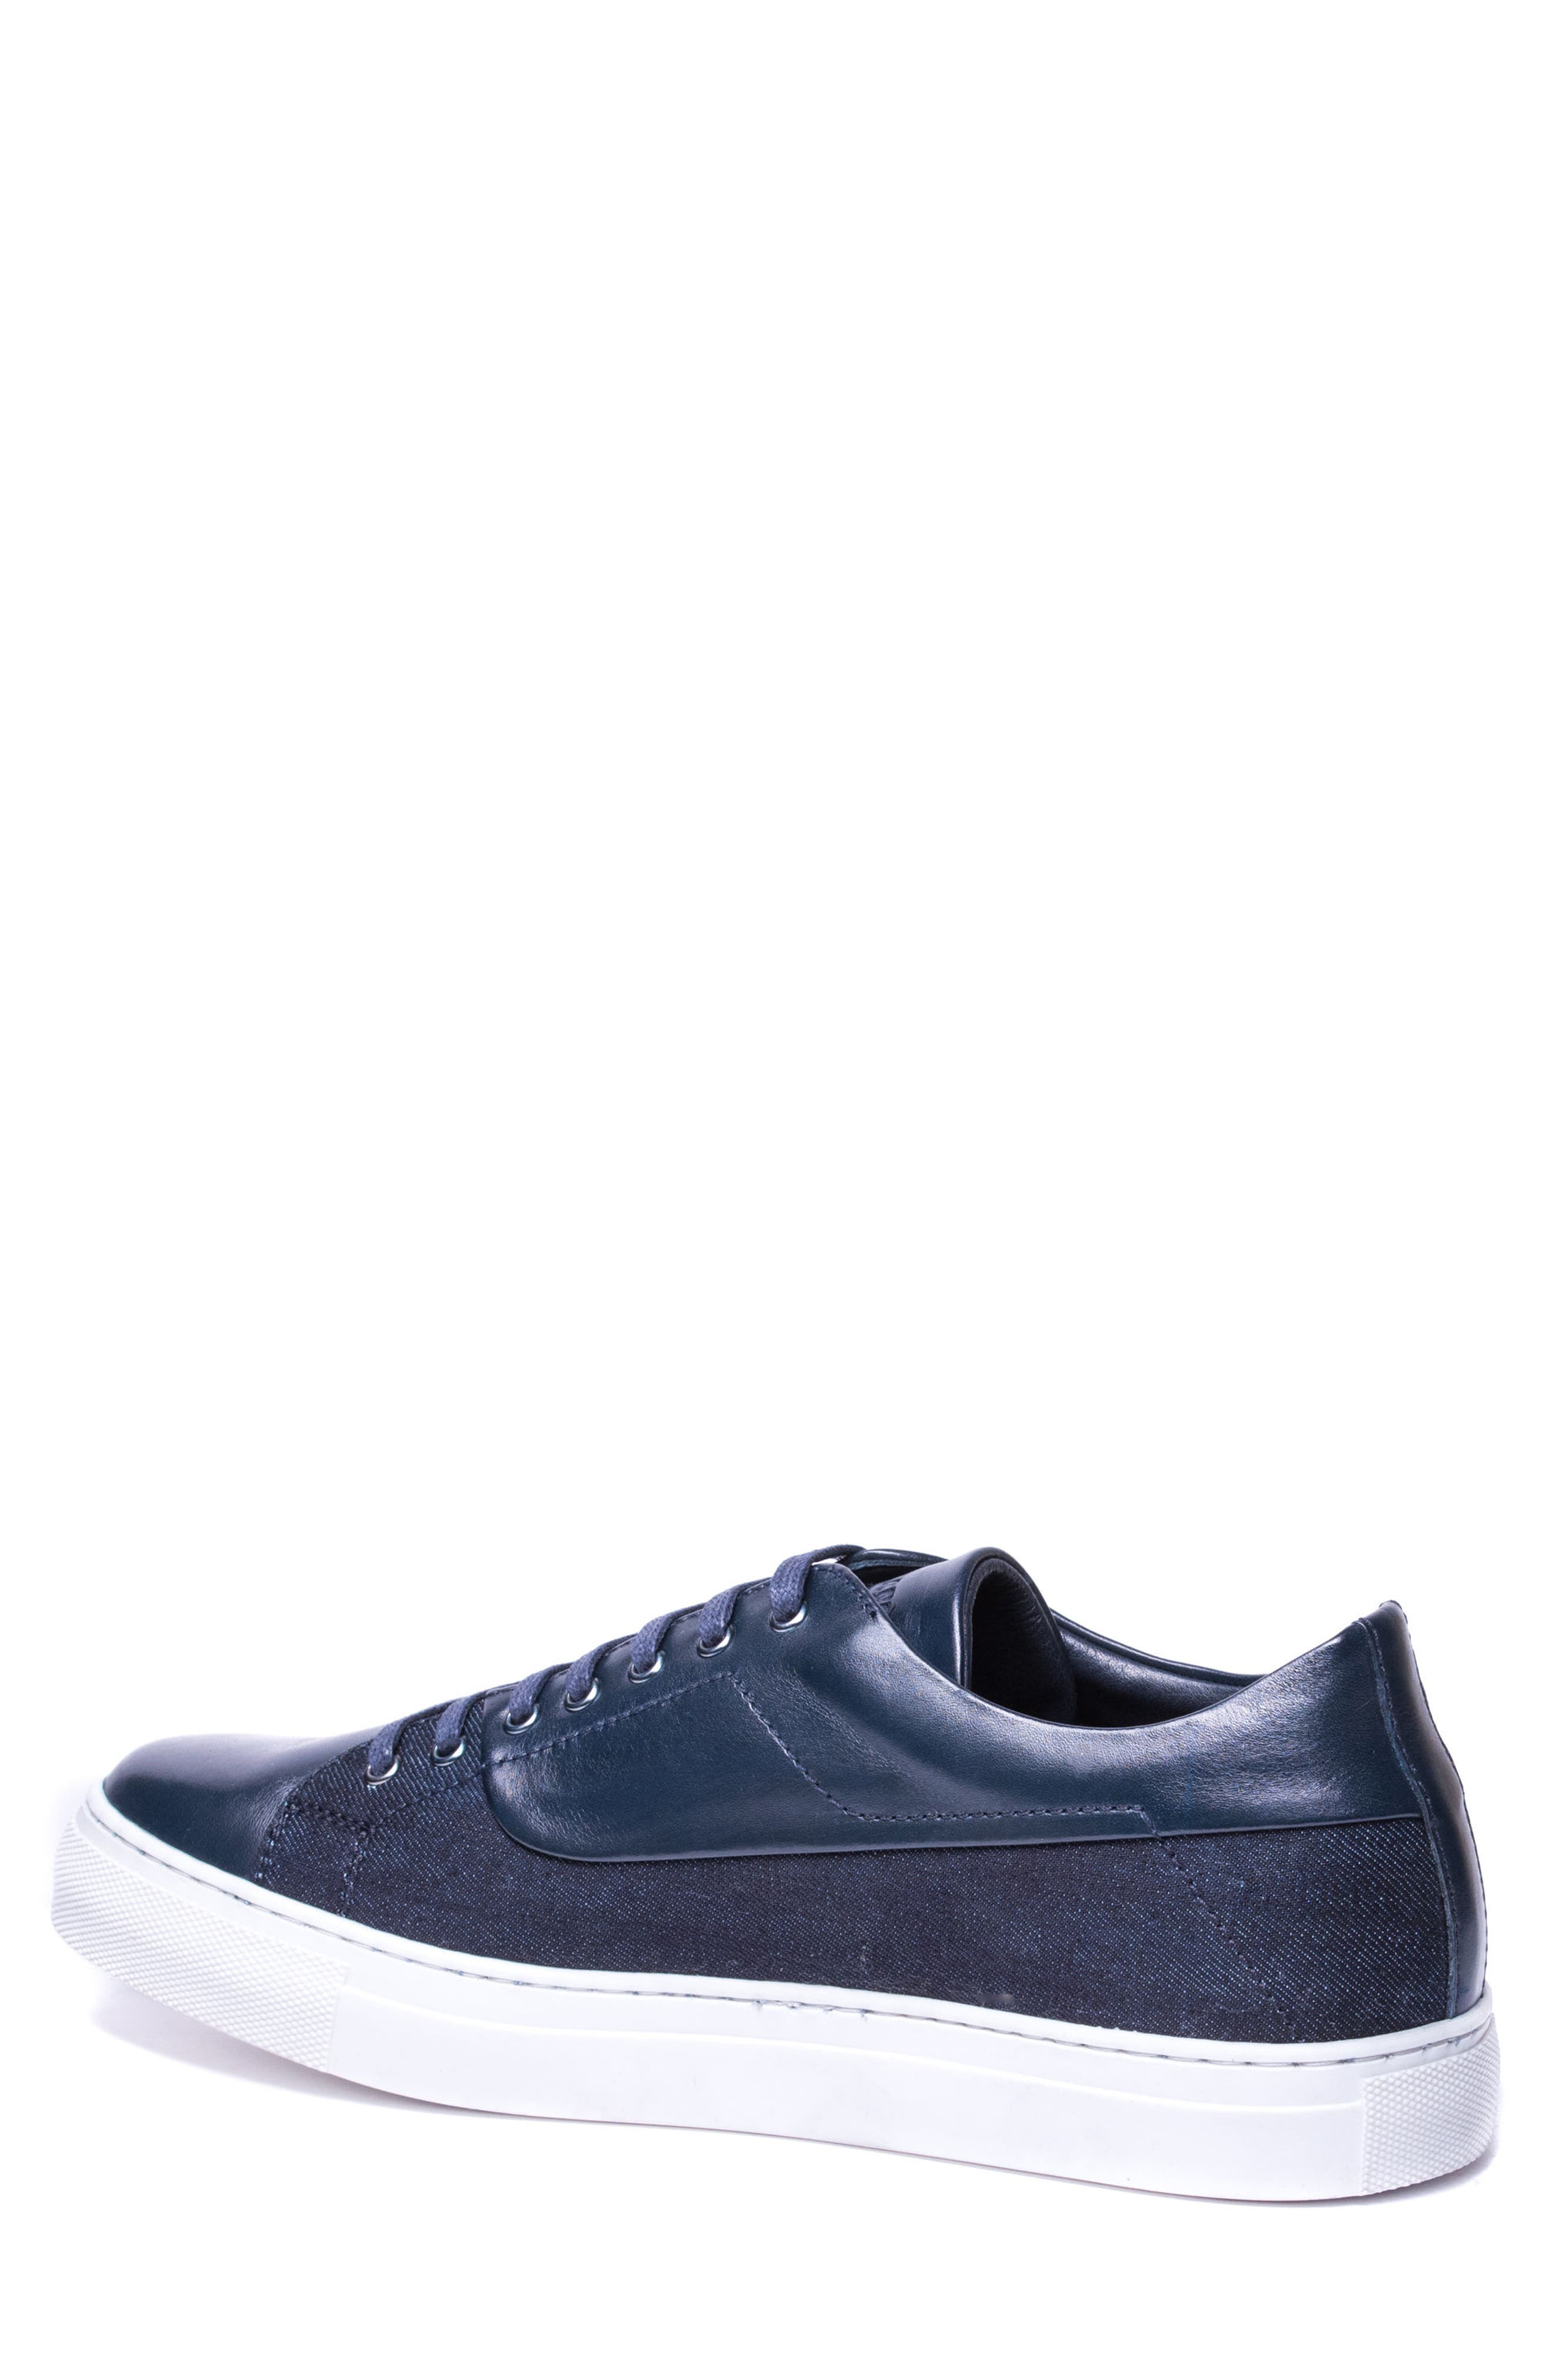 Luke Low Top Sneaker,                             Alternate thumbnail 2, color,                             NAVY LEATHER